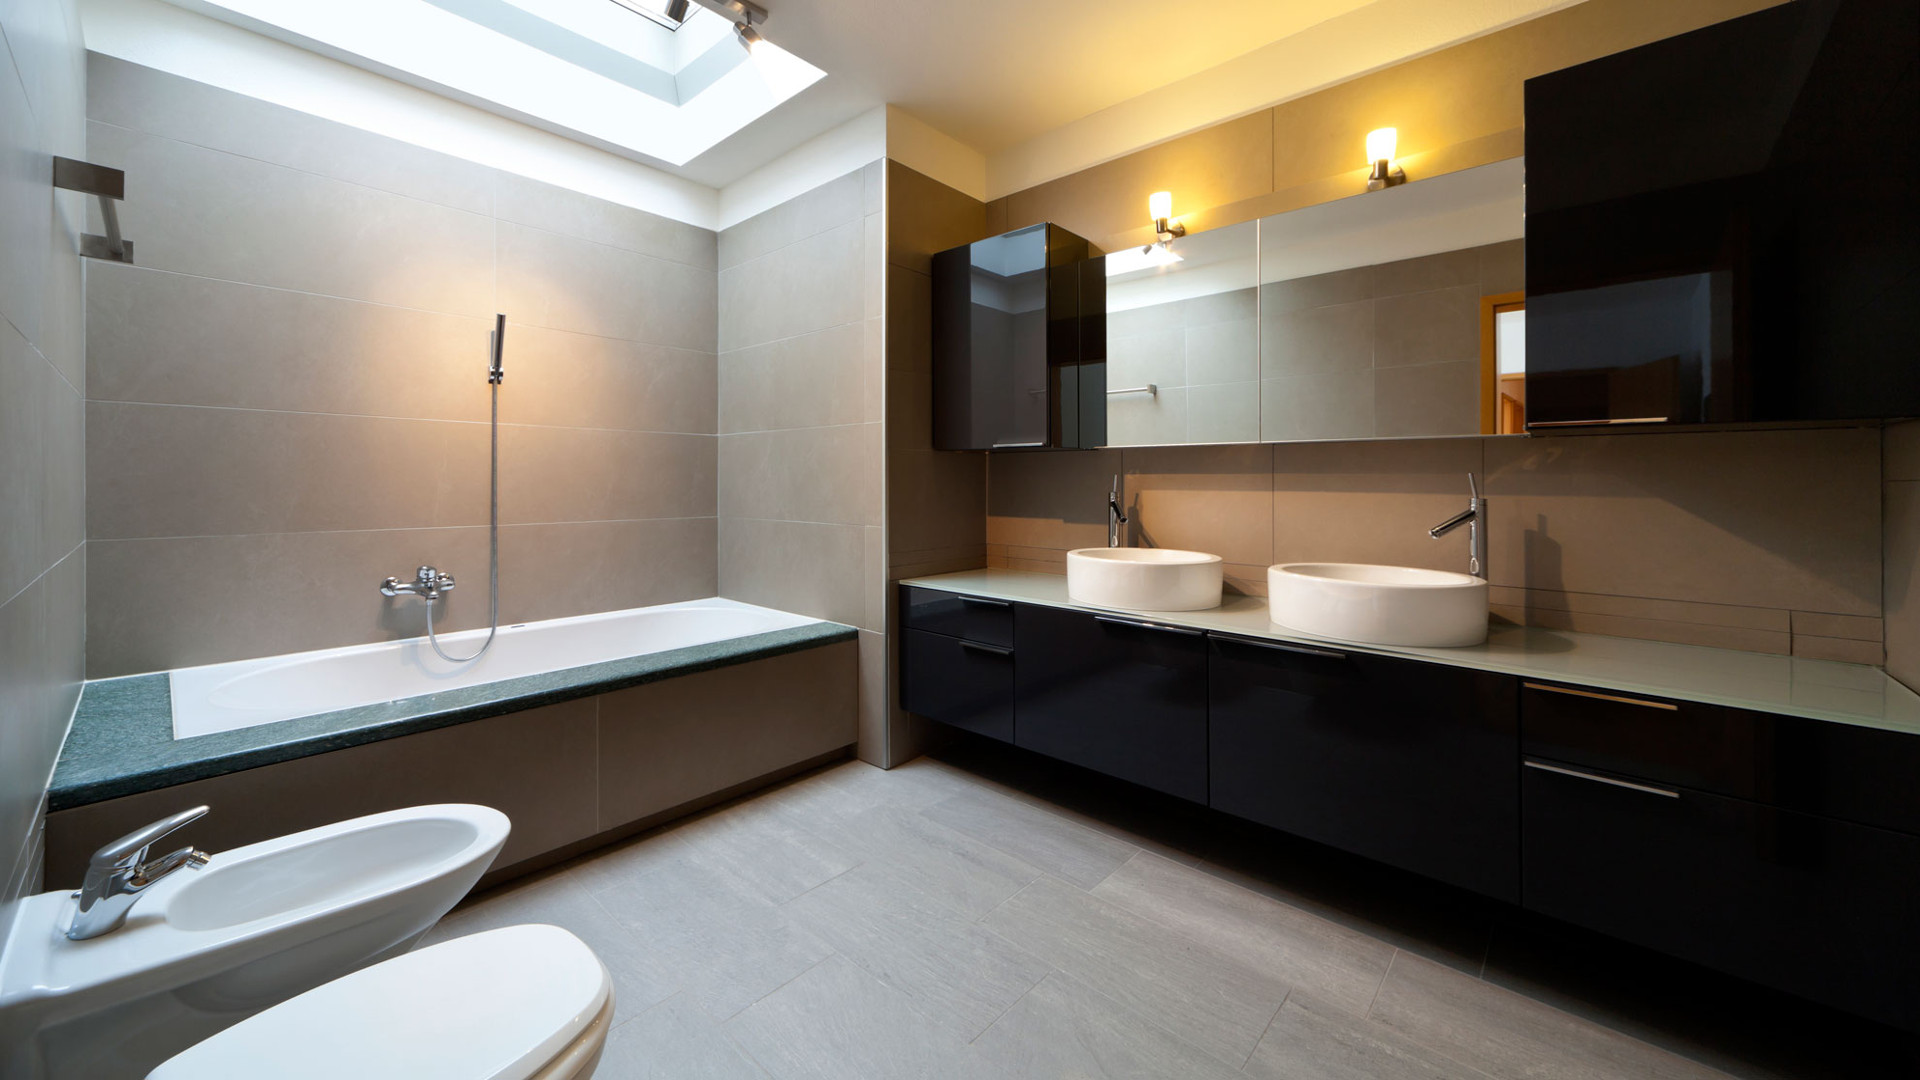 Centreville Fairfax And Vienna Bathroom Remodeling